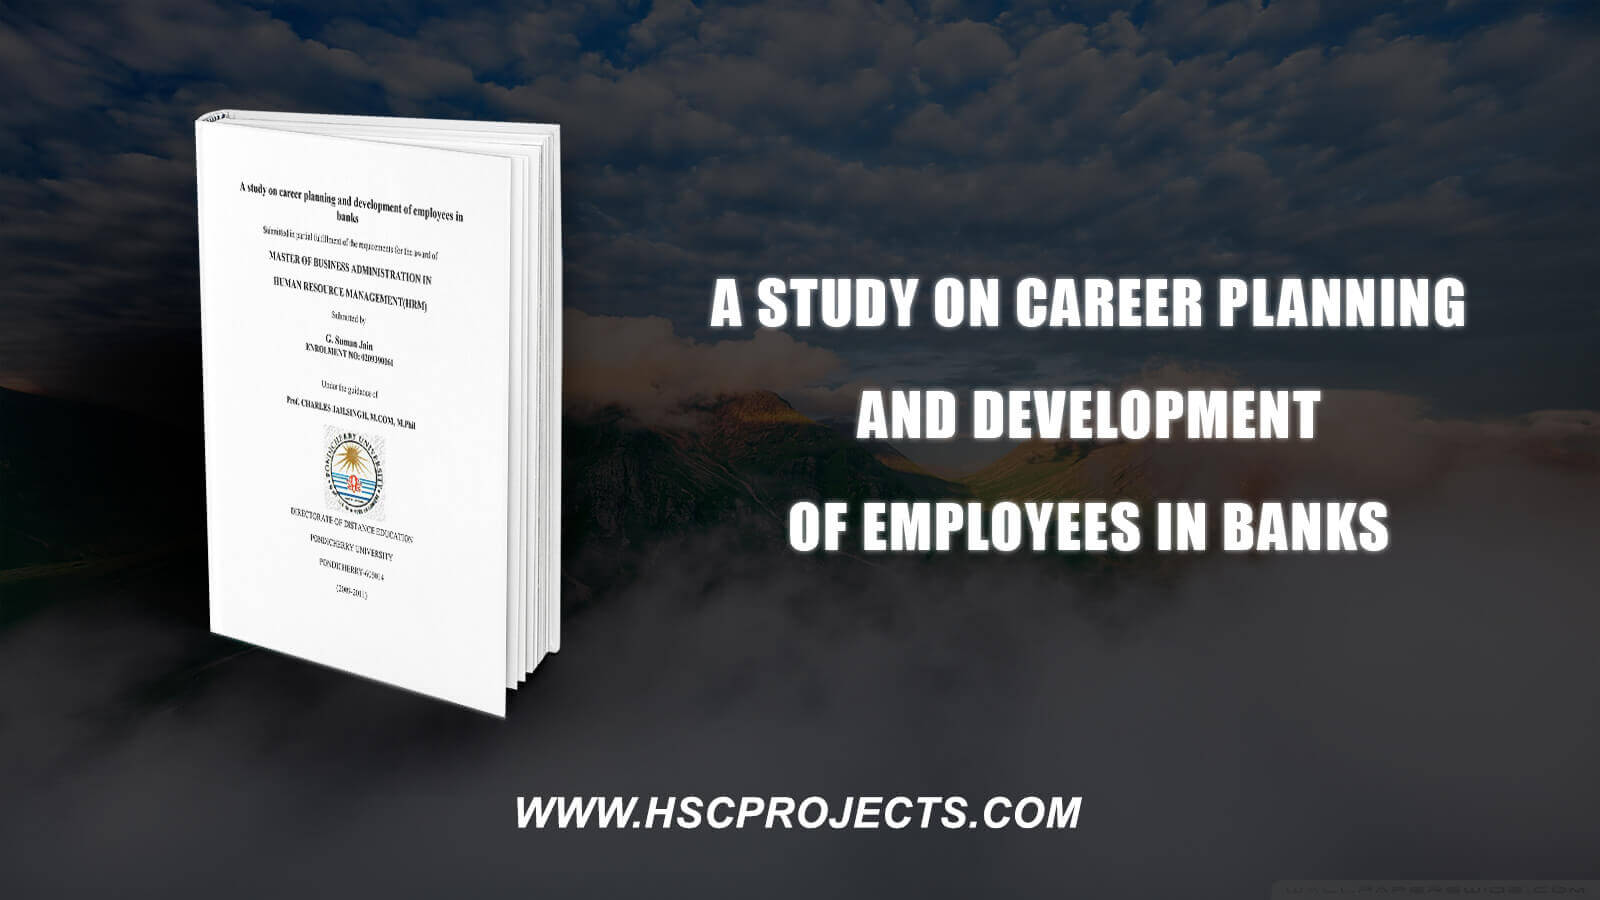 A Study On Career Planning And Development Of Employees In Banks